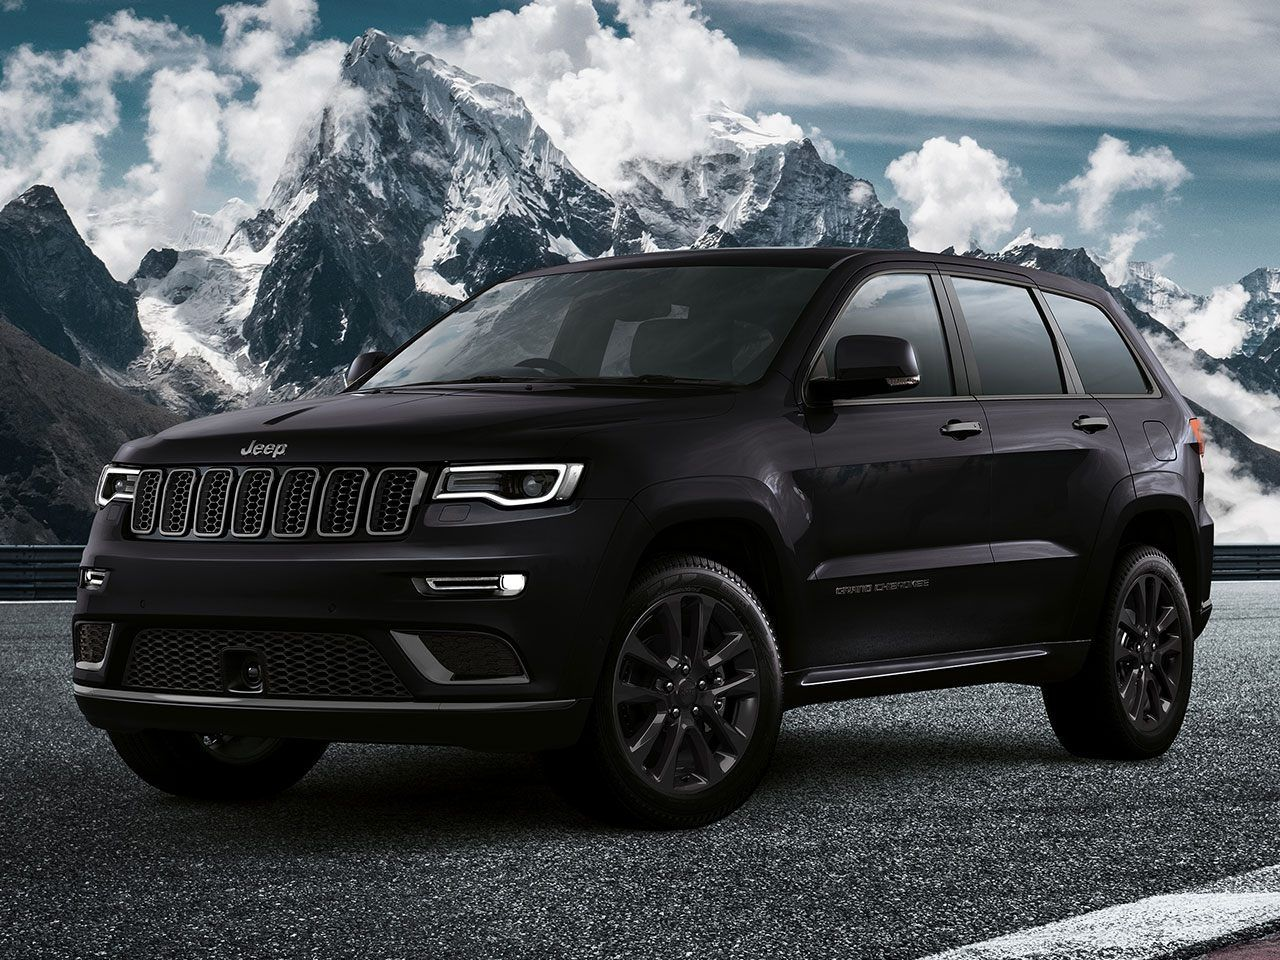 Jeep Grand Cherokee Historical Past In 2020 Jeep Grand Cherokee